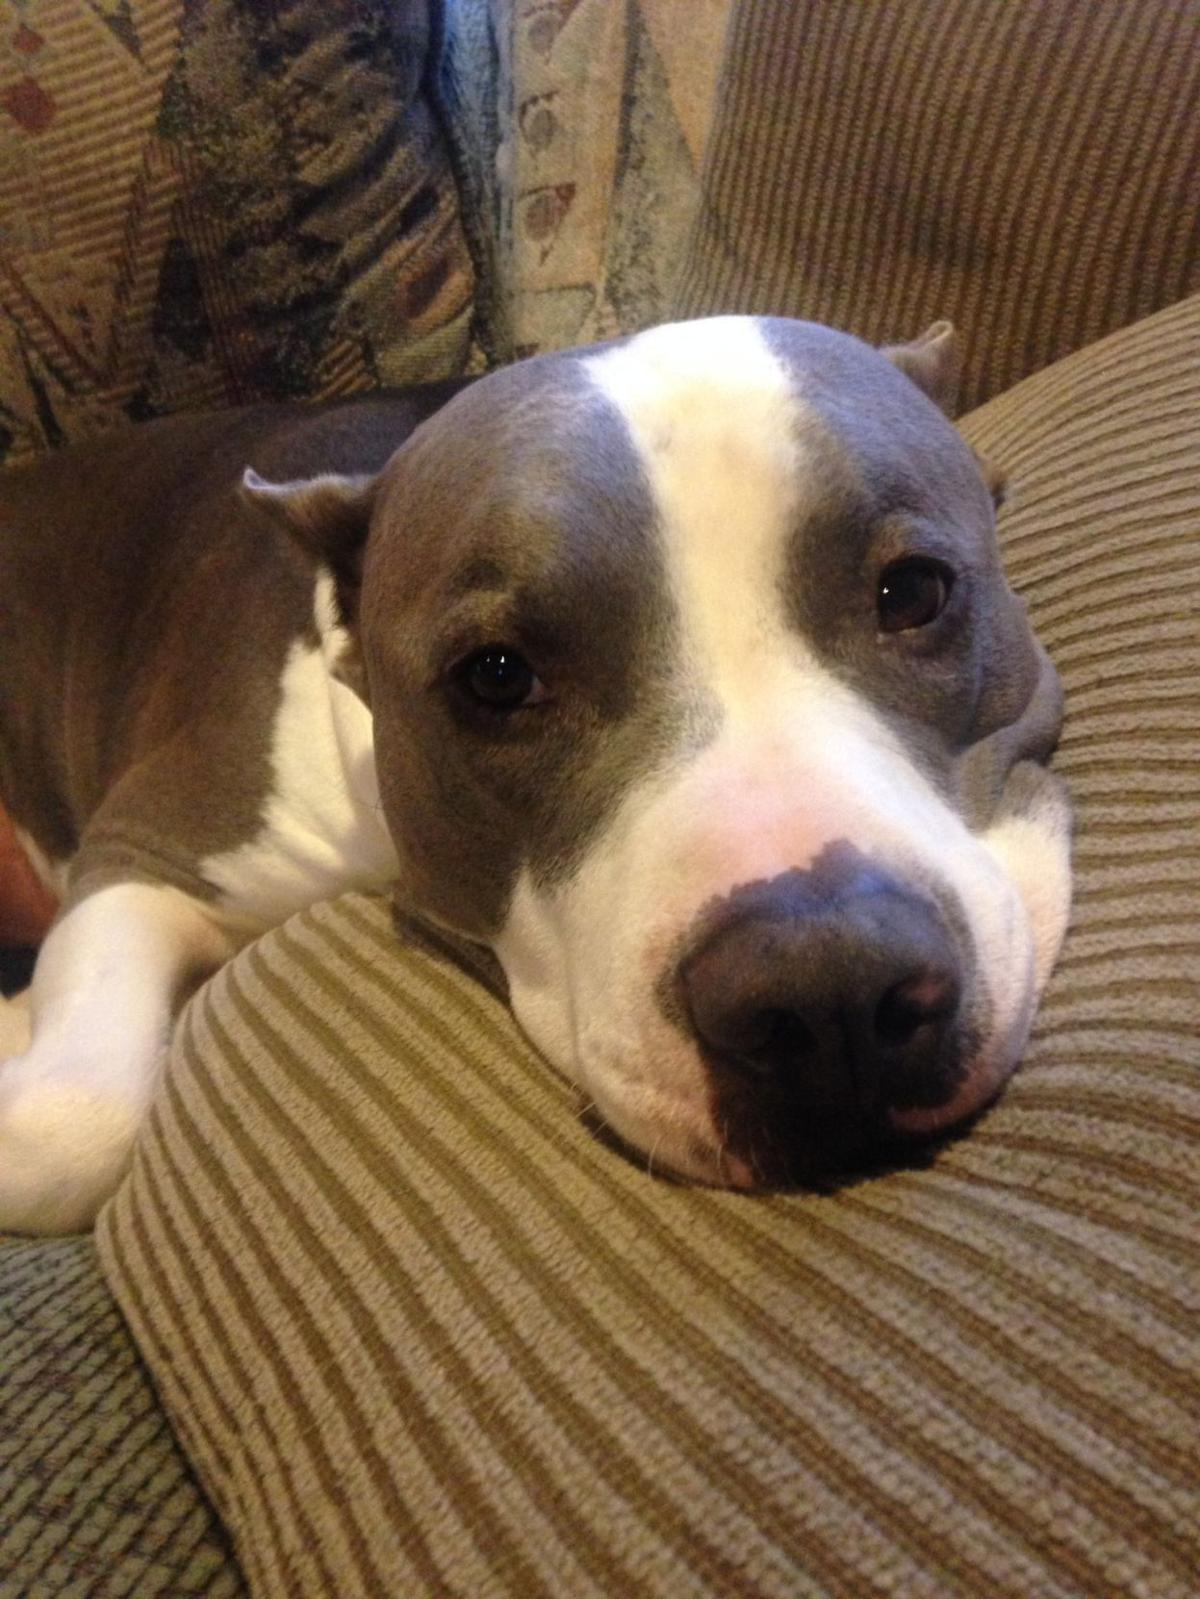 Lou, the pit bull